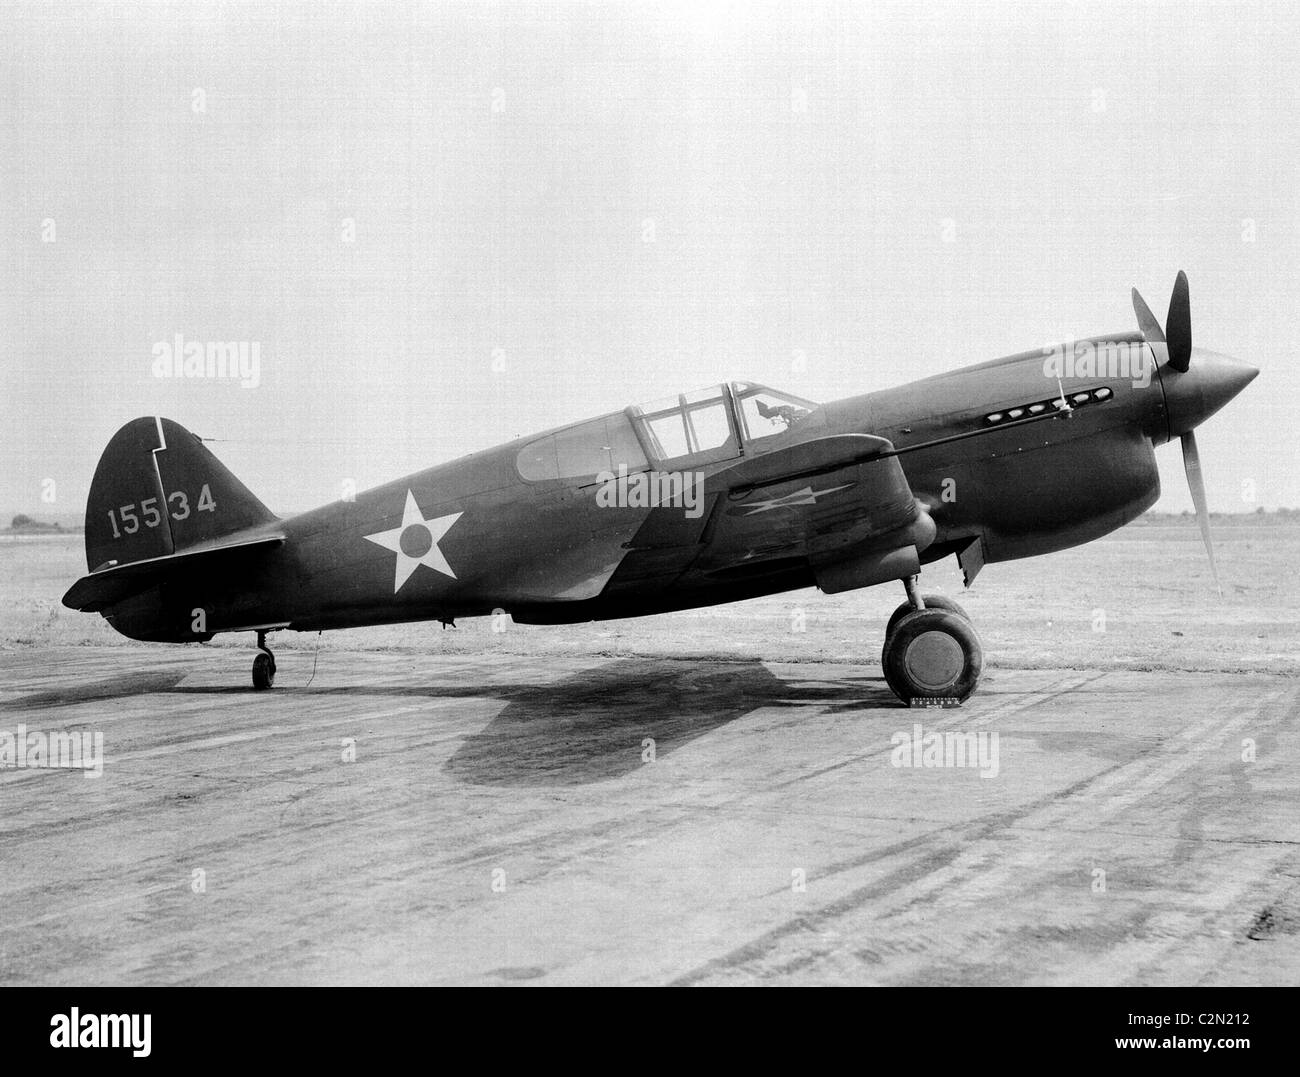 Curtiss P-40 Warhawk was an American single-engine, single-seat, all-metal fighter and ground attack aircraft. - Stock Image